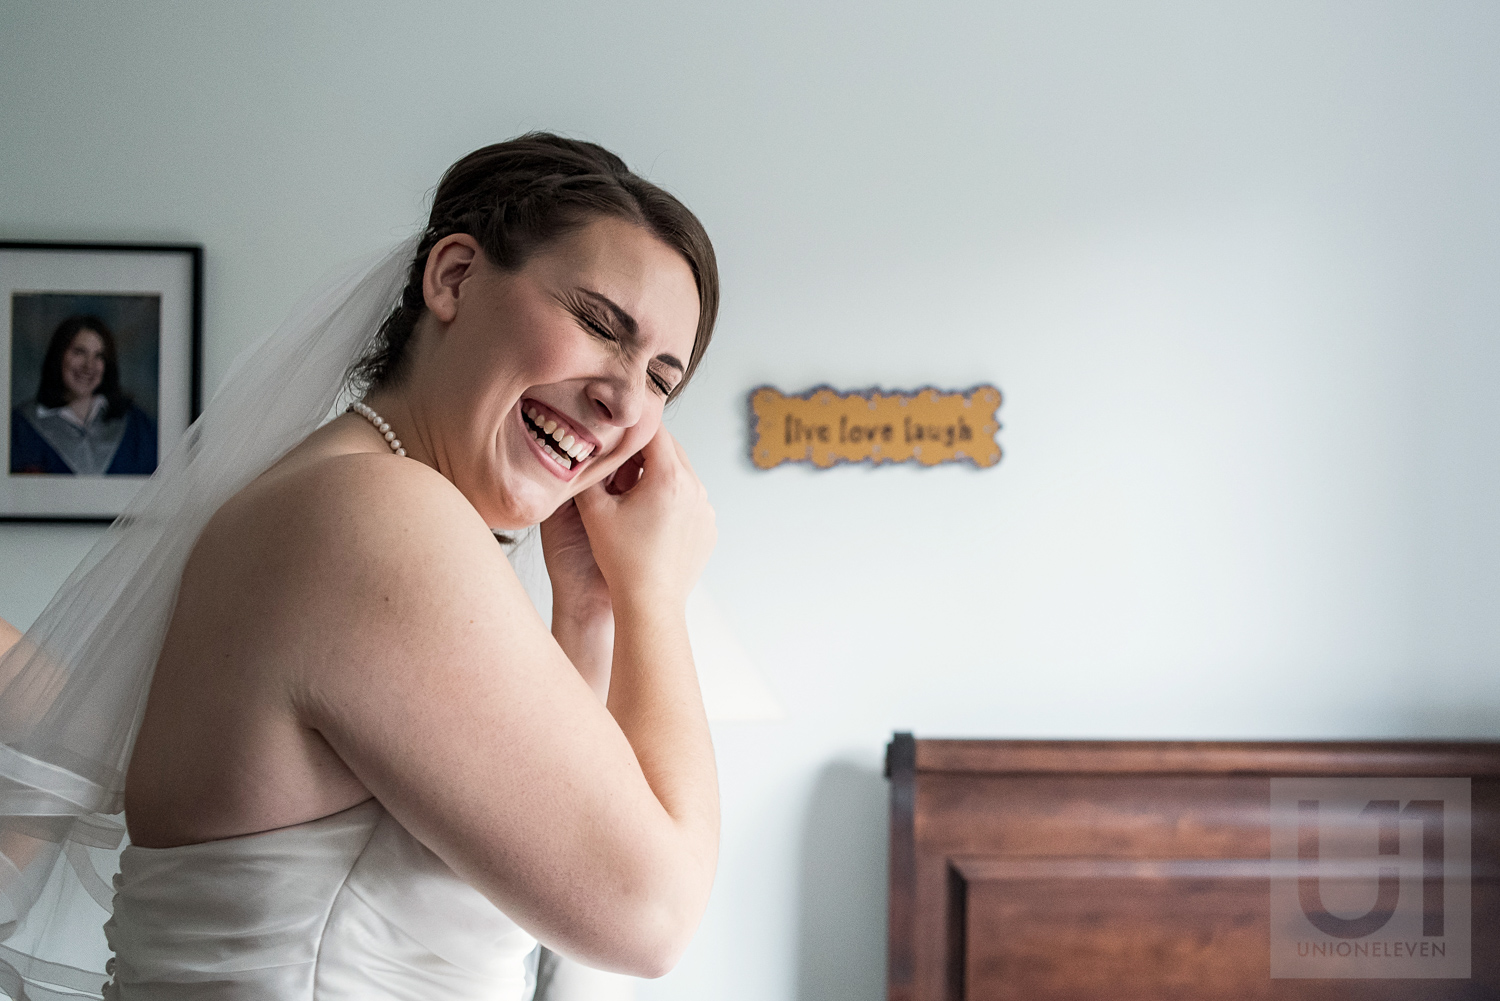 The bride getting ready and trying on her earrings